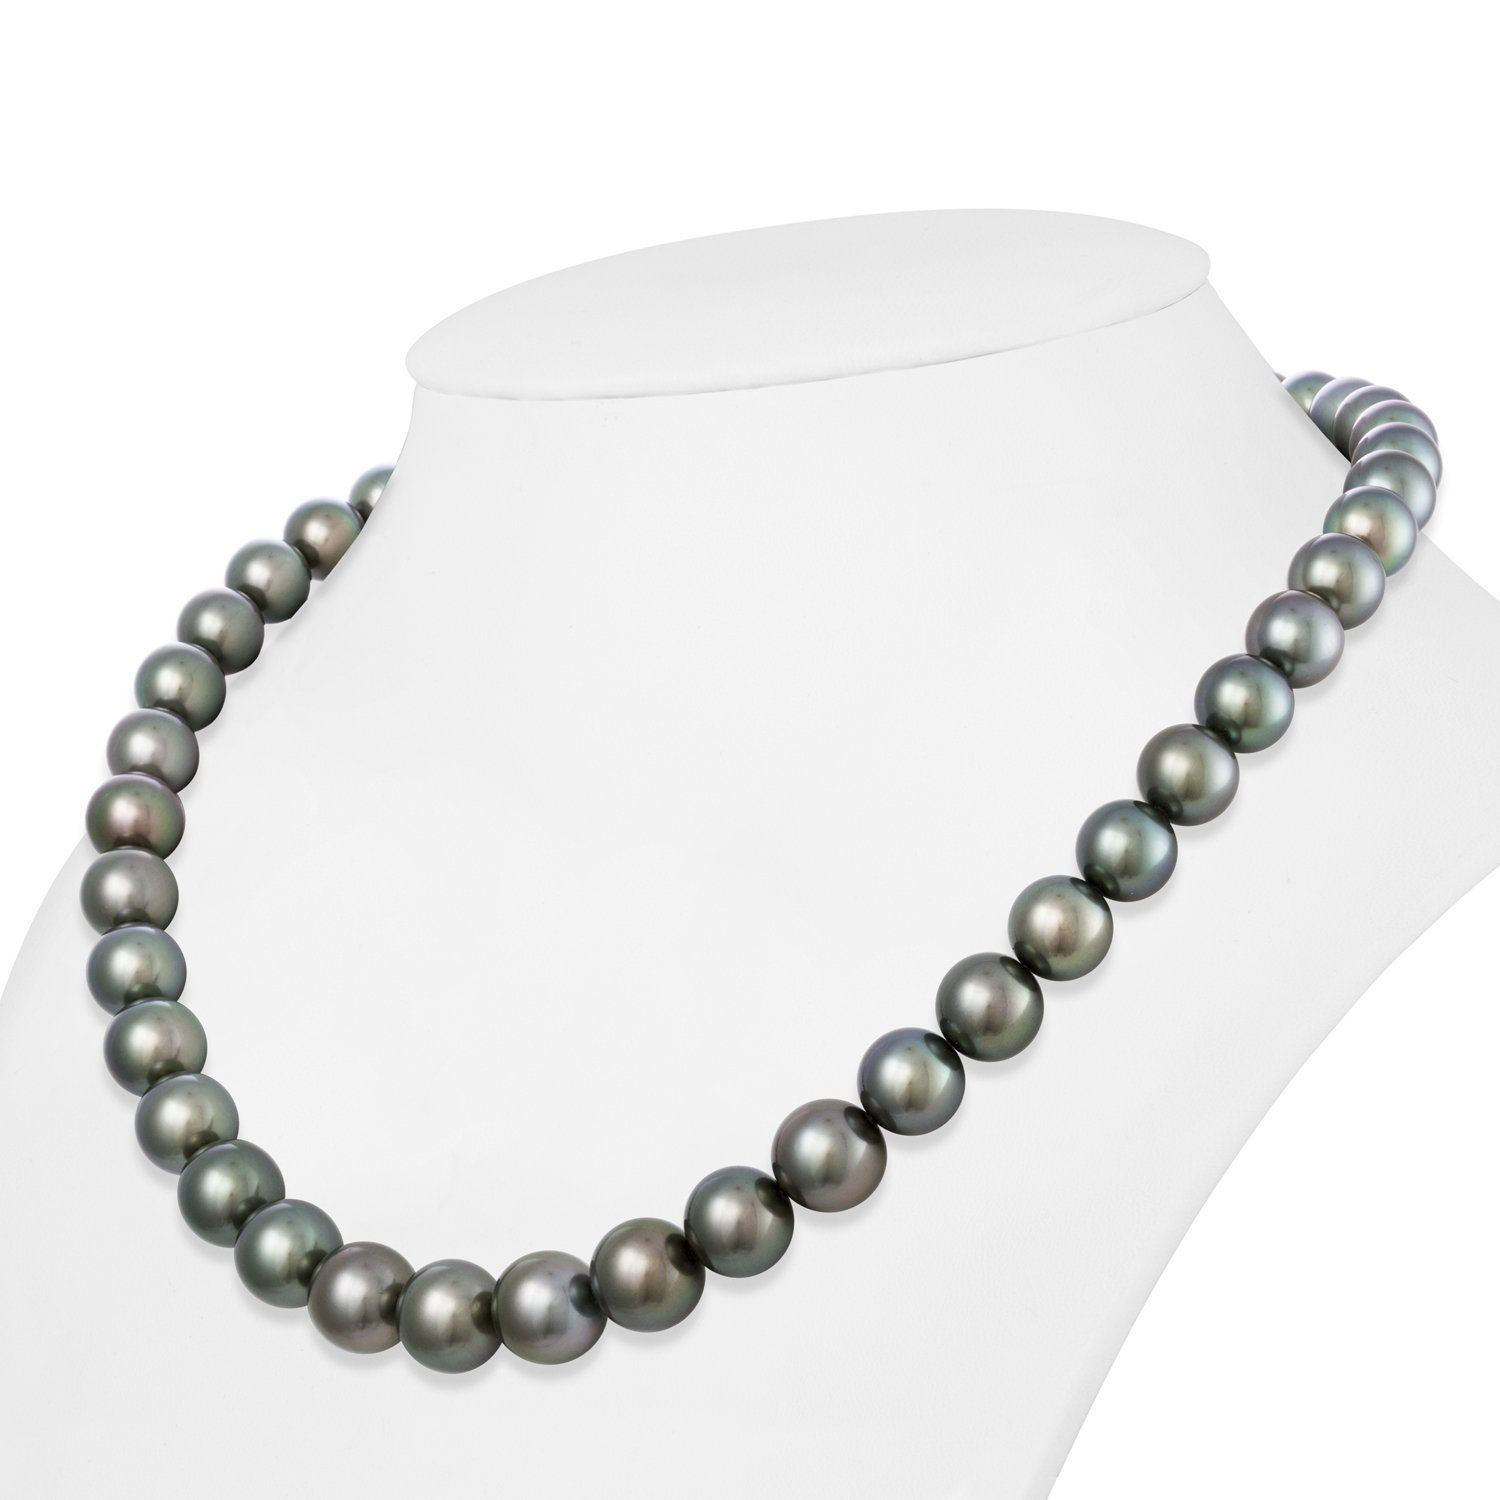 8.0-9.5 mm AAA Tahitian Round Pearl Necklace